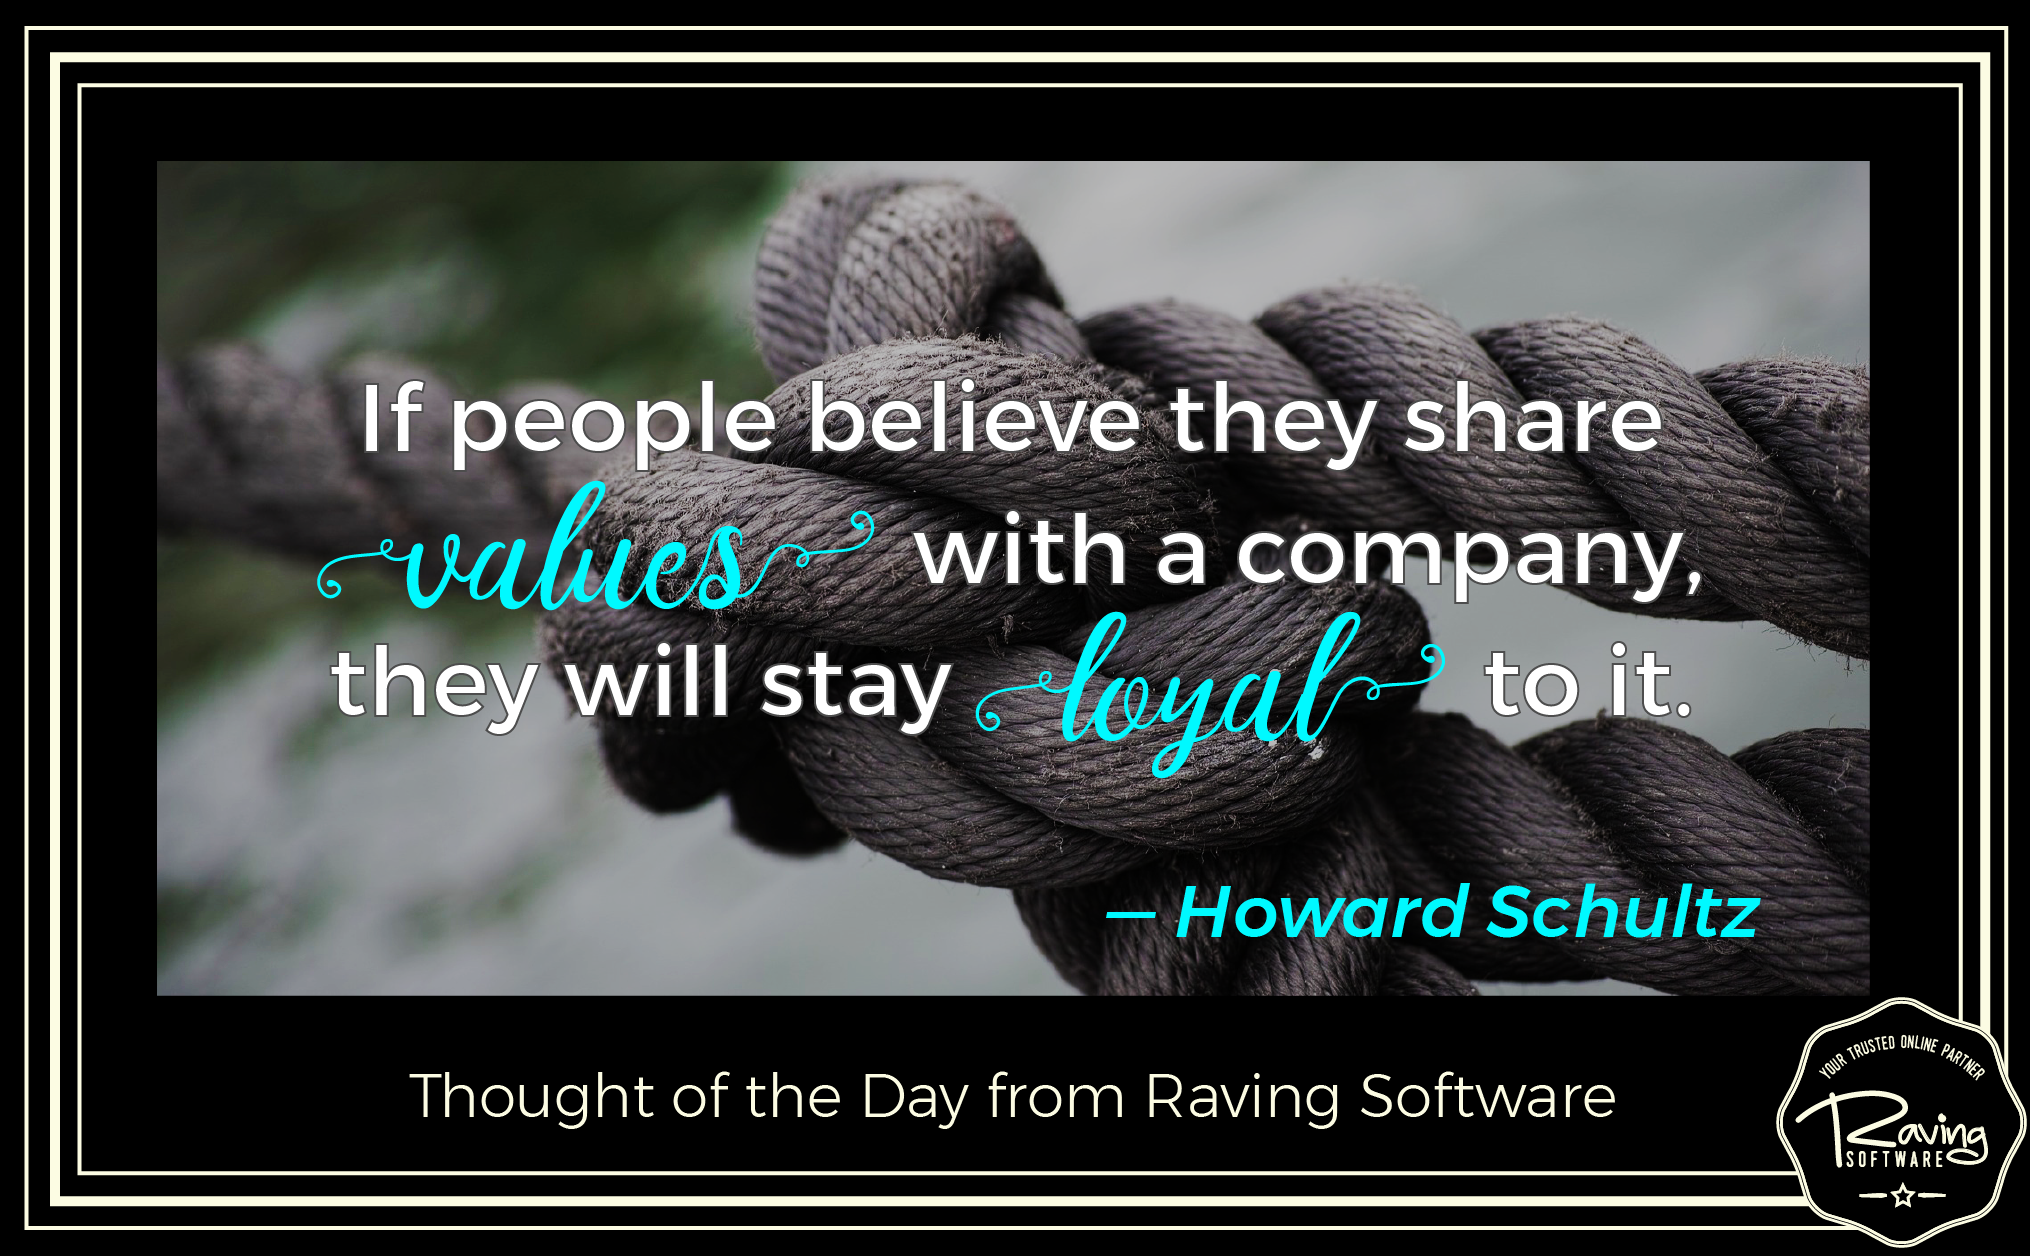 Raving Software Thought of the Day